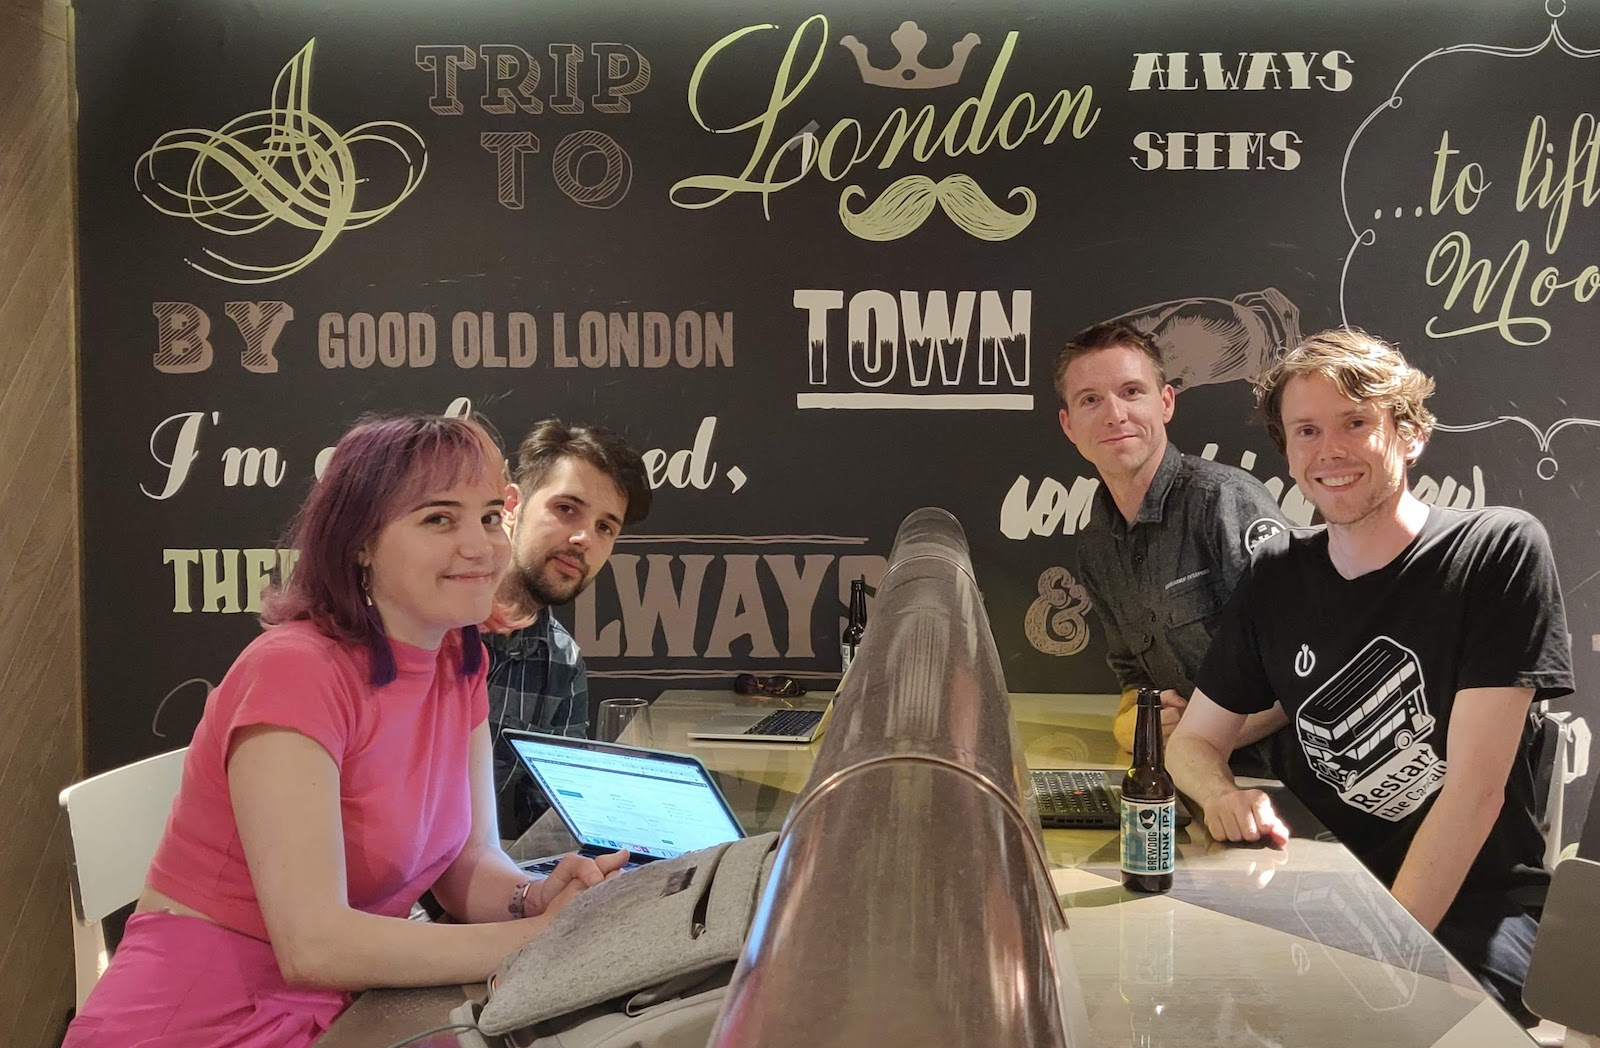 Lillian Karabaic, Josué Vázquez Rendo, Calum Ryan, Neil Mather inside at ProvenDough cafe, London Covent Garden 2019-08-21